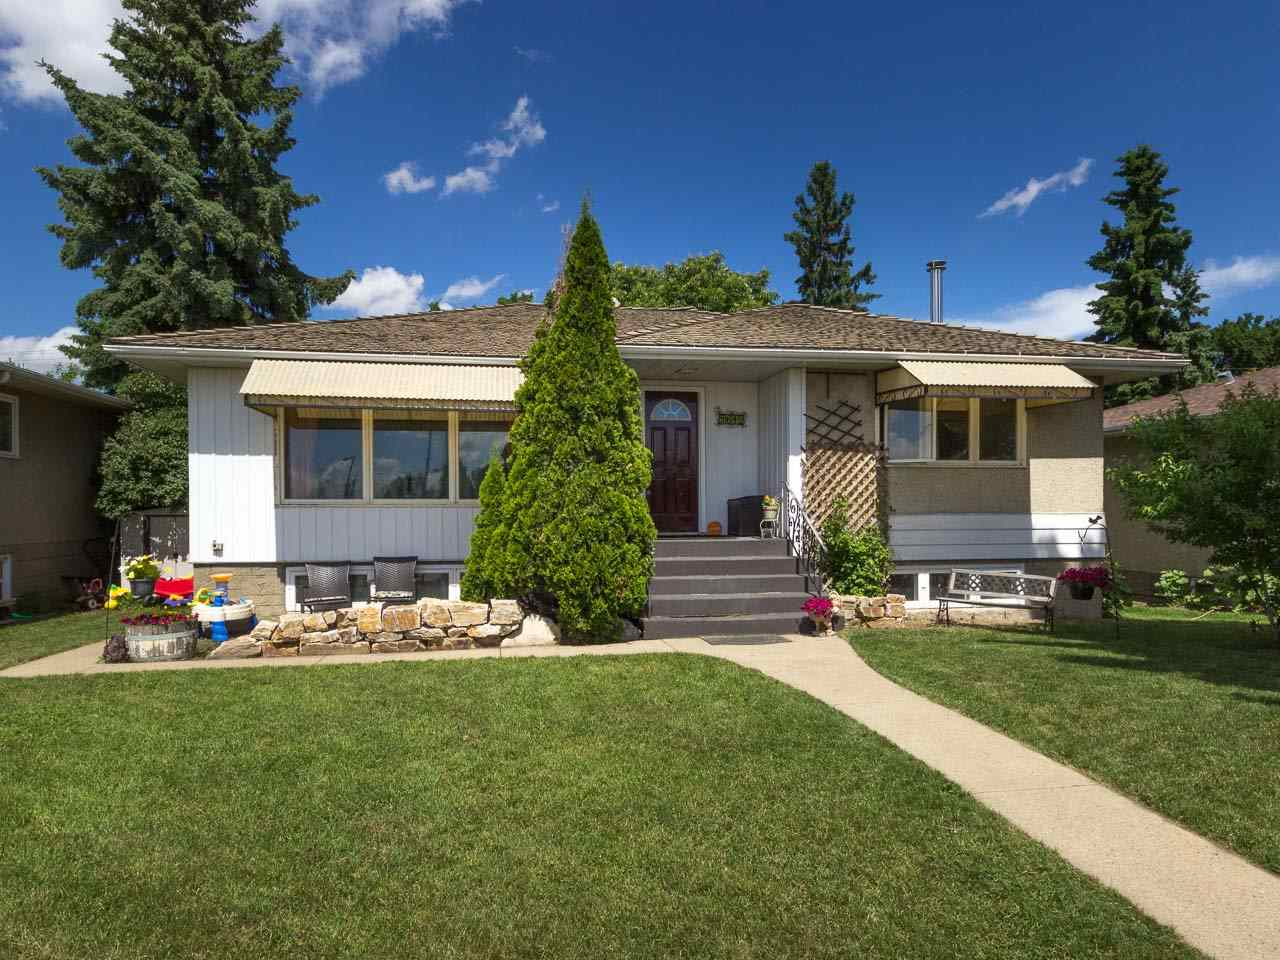 Main Photo: 5612 101 Avenue in Edmonton: Zone 19 House for sale : MLS® # E4078958